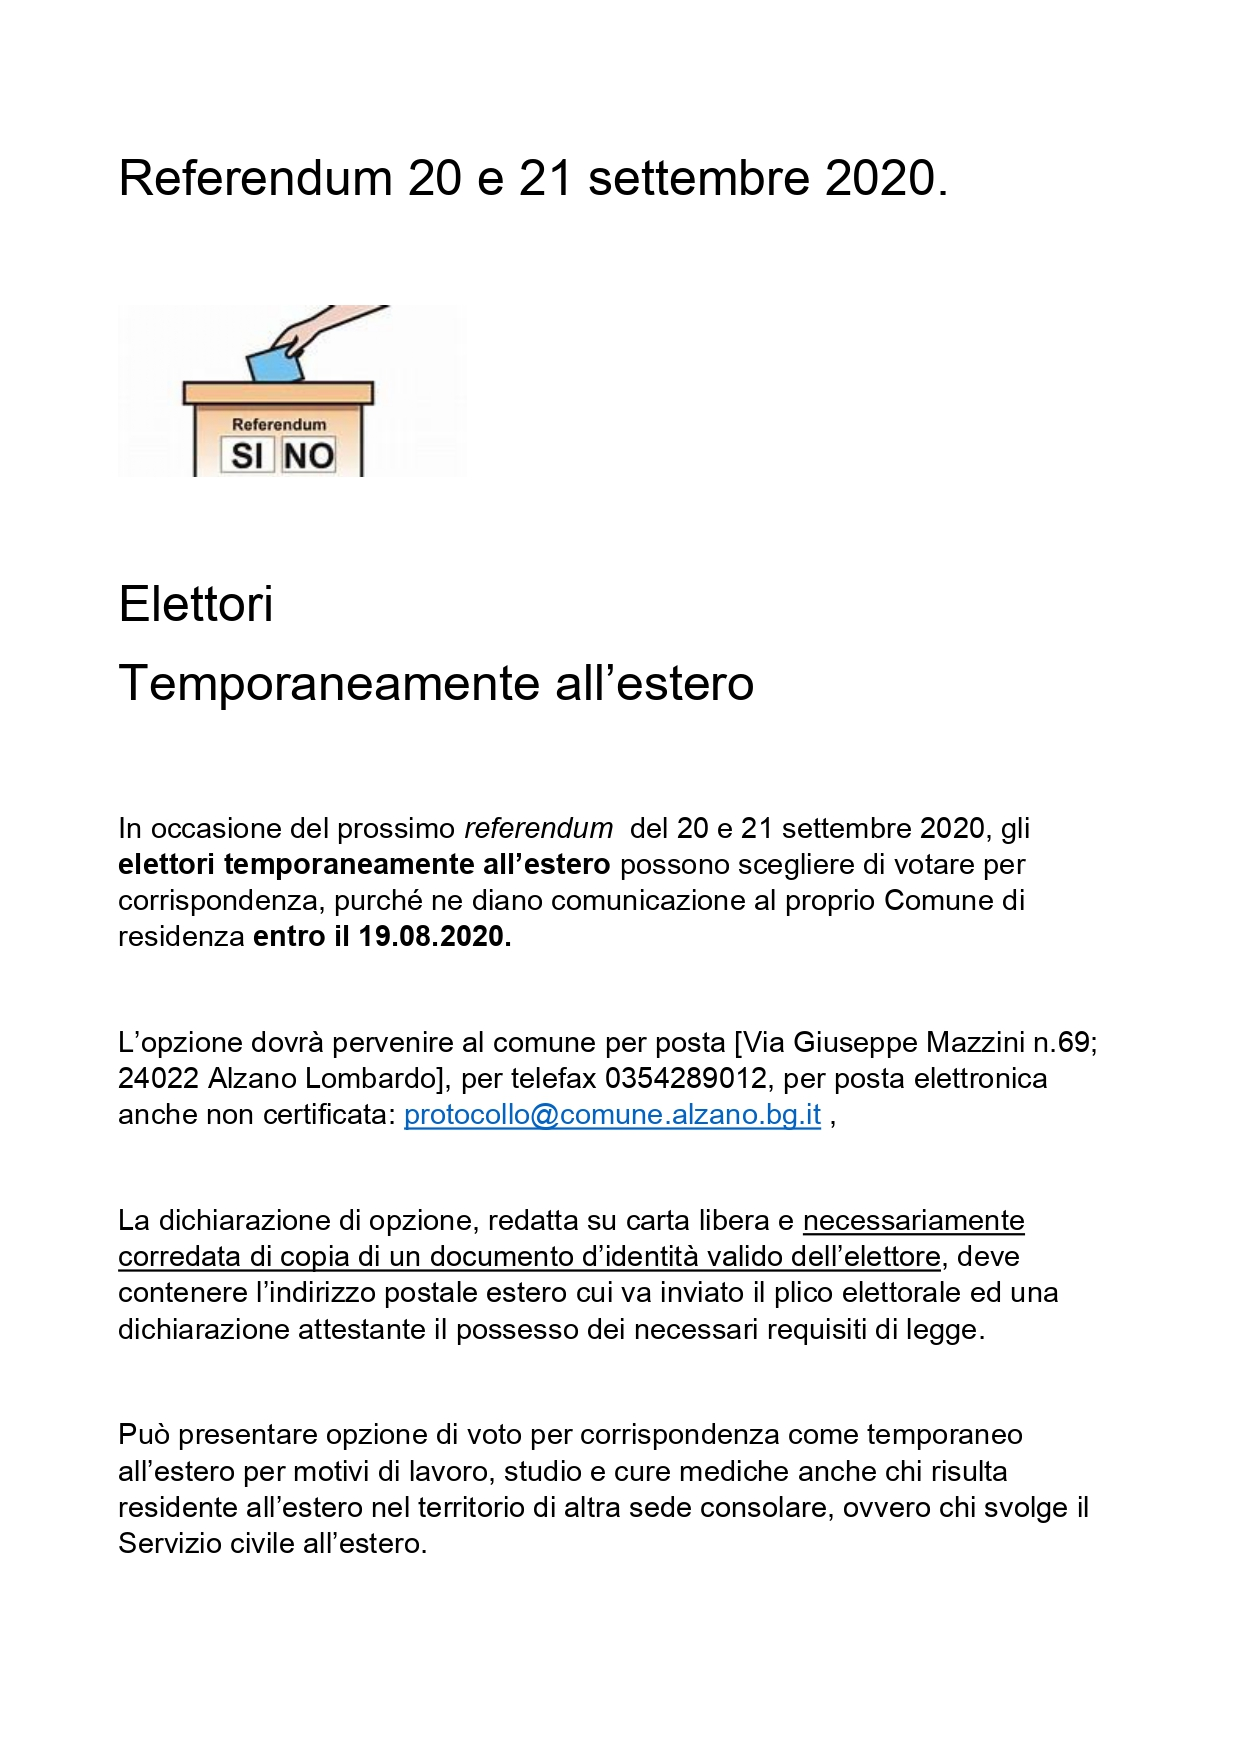 documento elettori temporaneamente all'estero_page-0001